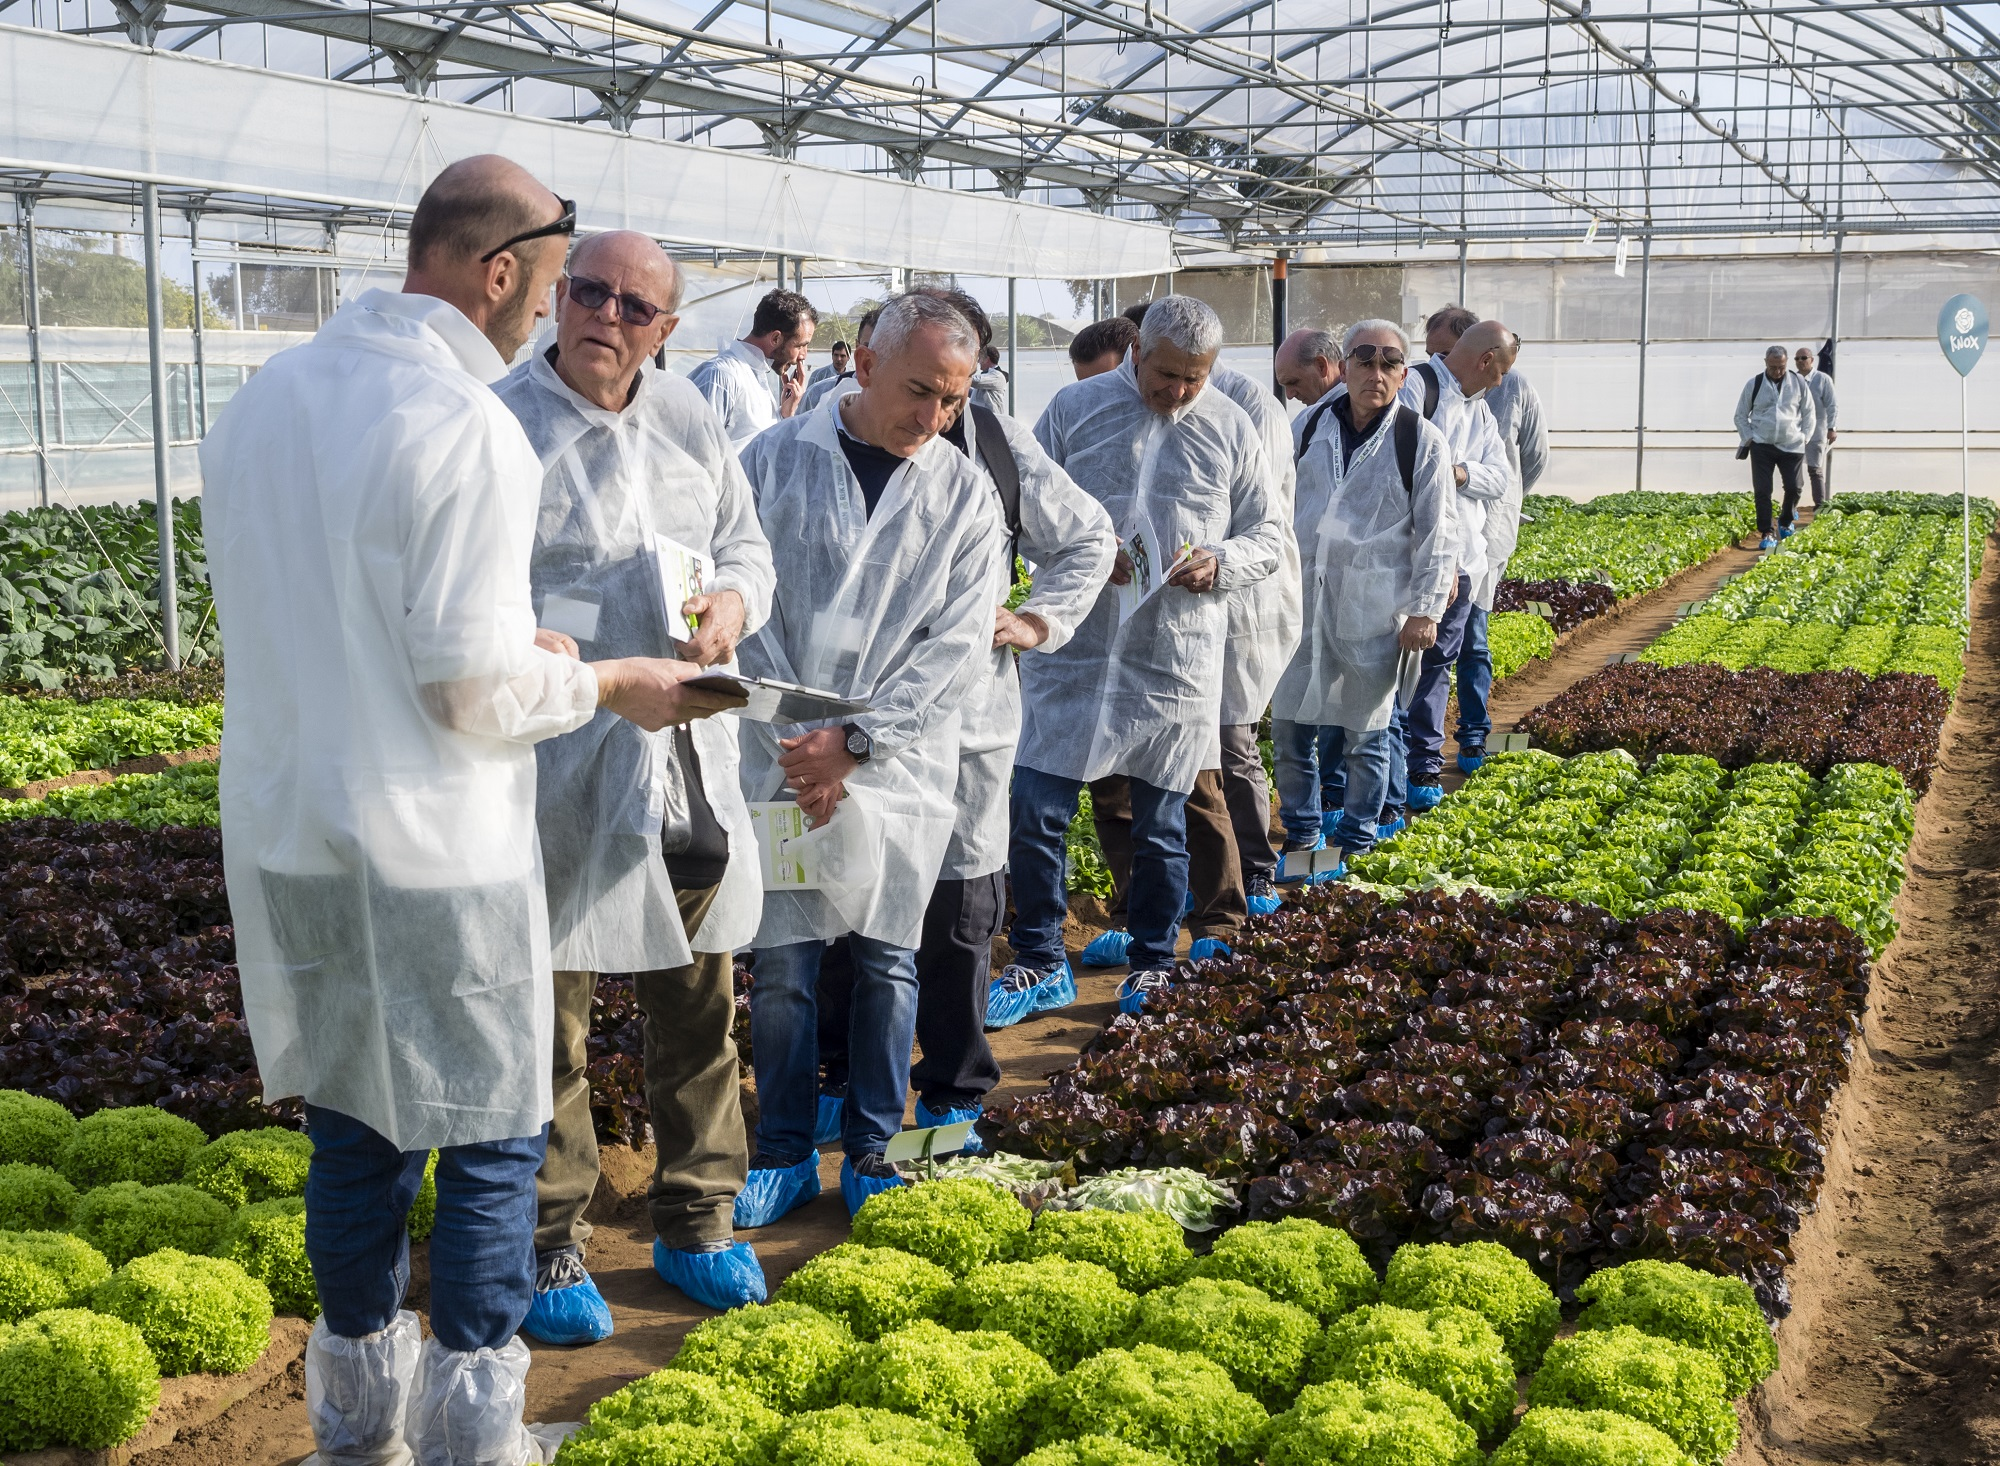 Growers visiting greenhouse Italy